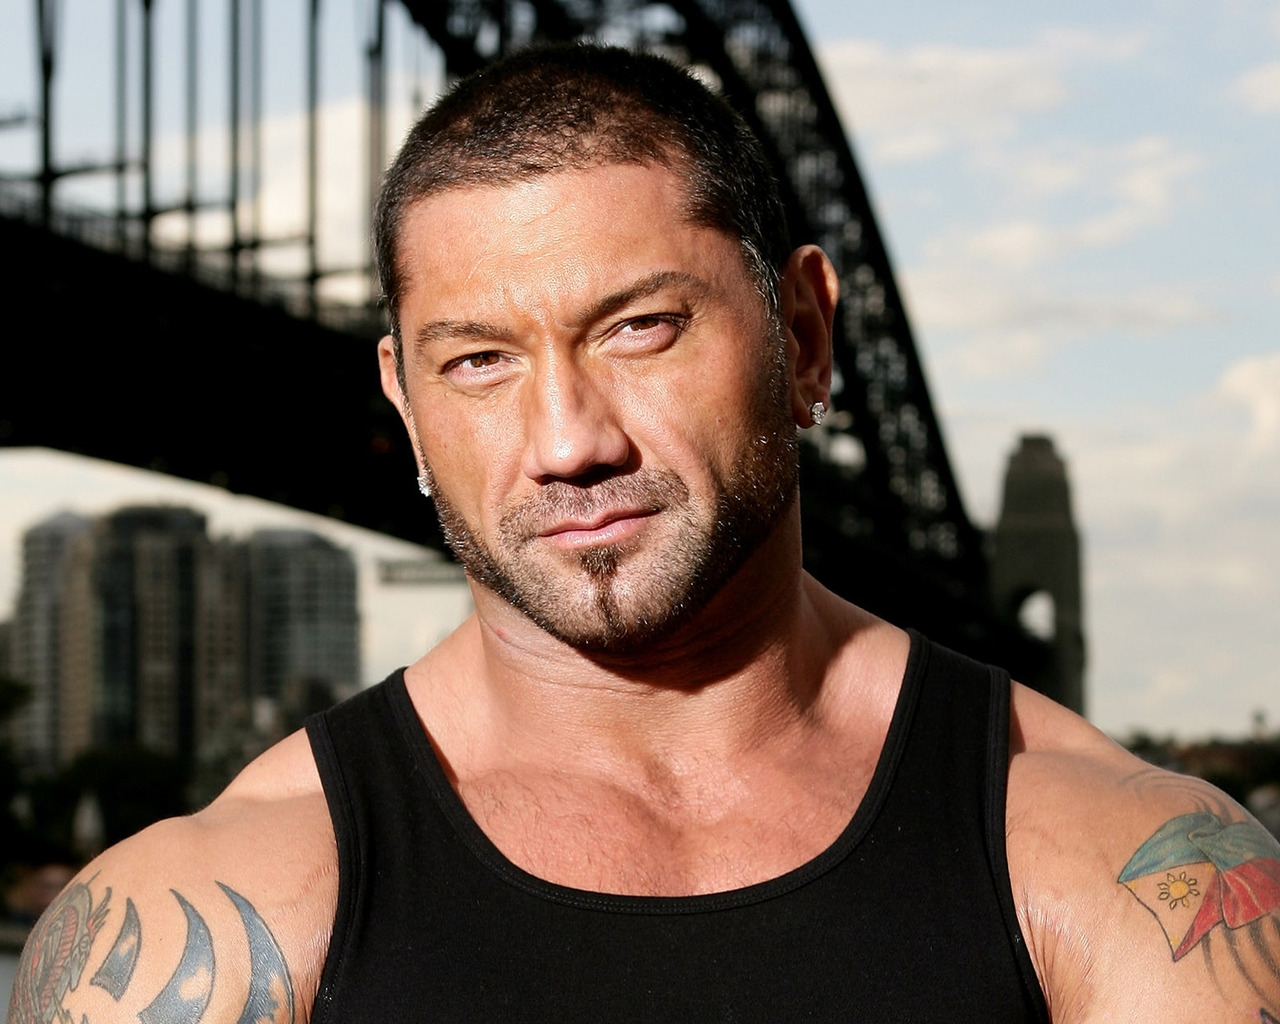 Dave Bautista for 1280 x 1024 resolution